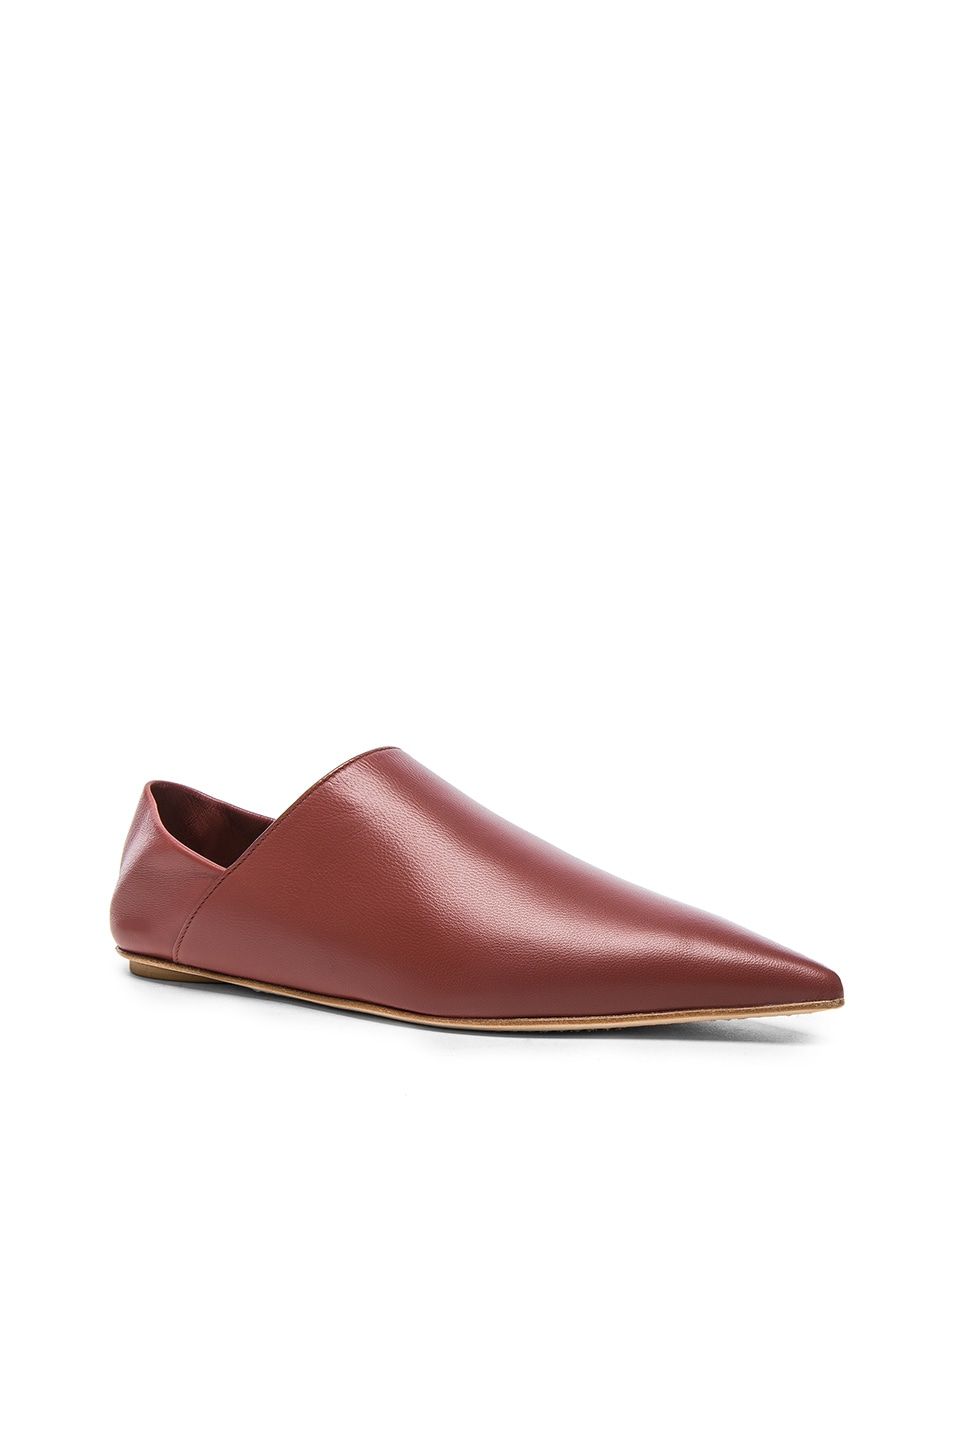 Image 6 of Marni Leather Sabot Mules in Saddle Brown